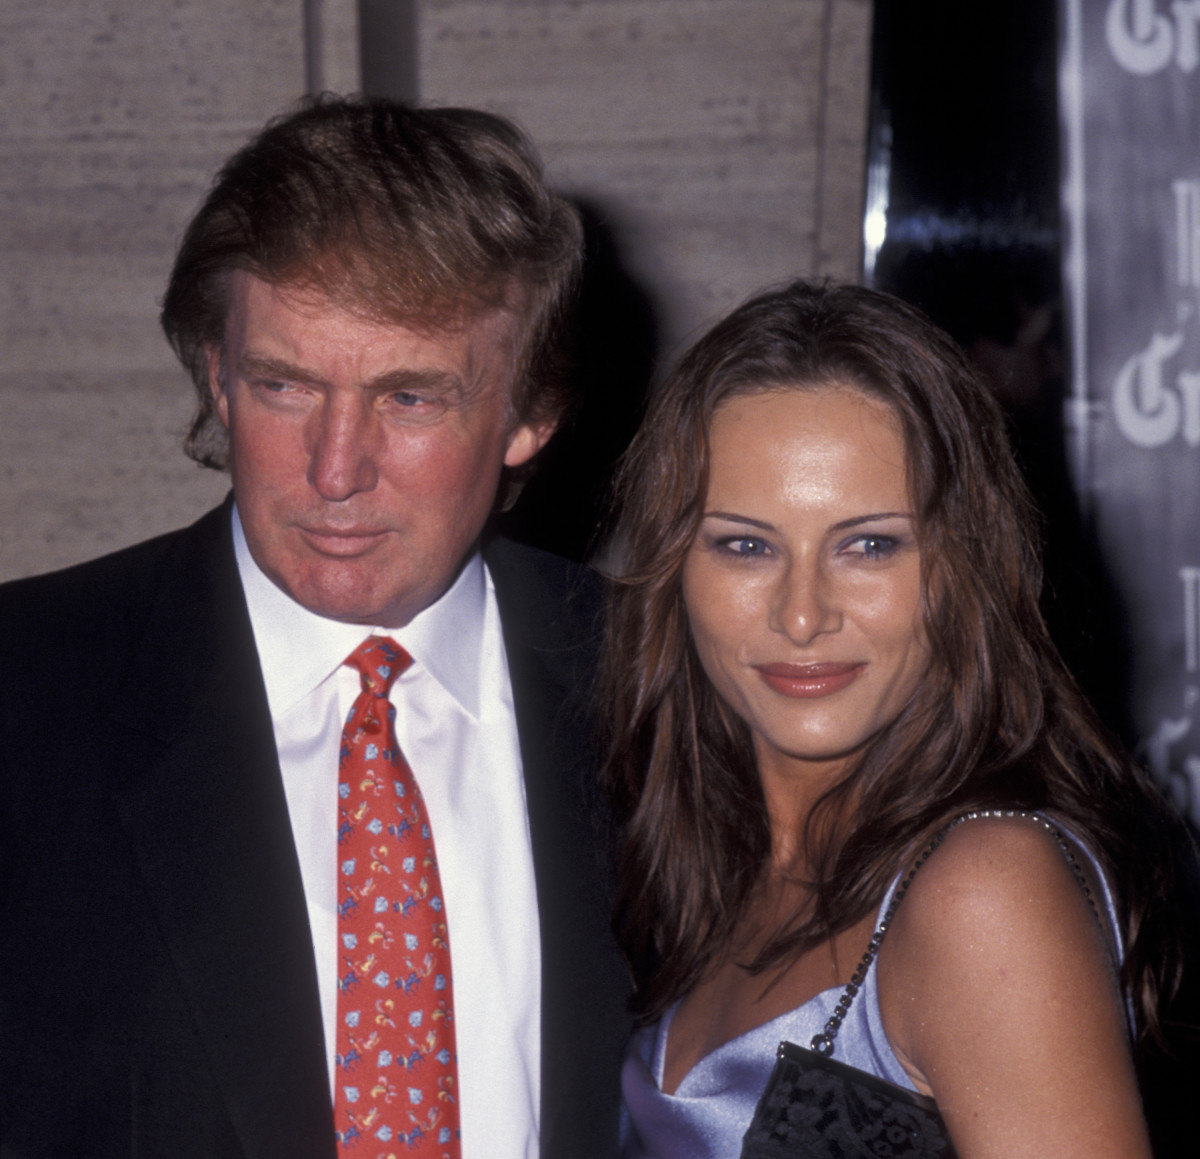 Donald Trump and Melania Trump attend the premiere of 'Celebrity' on September 25, 1998 at Avery Fisher Hall at Lincoln Center in New York City